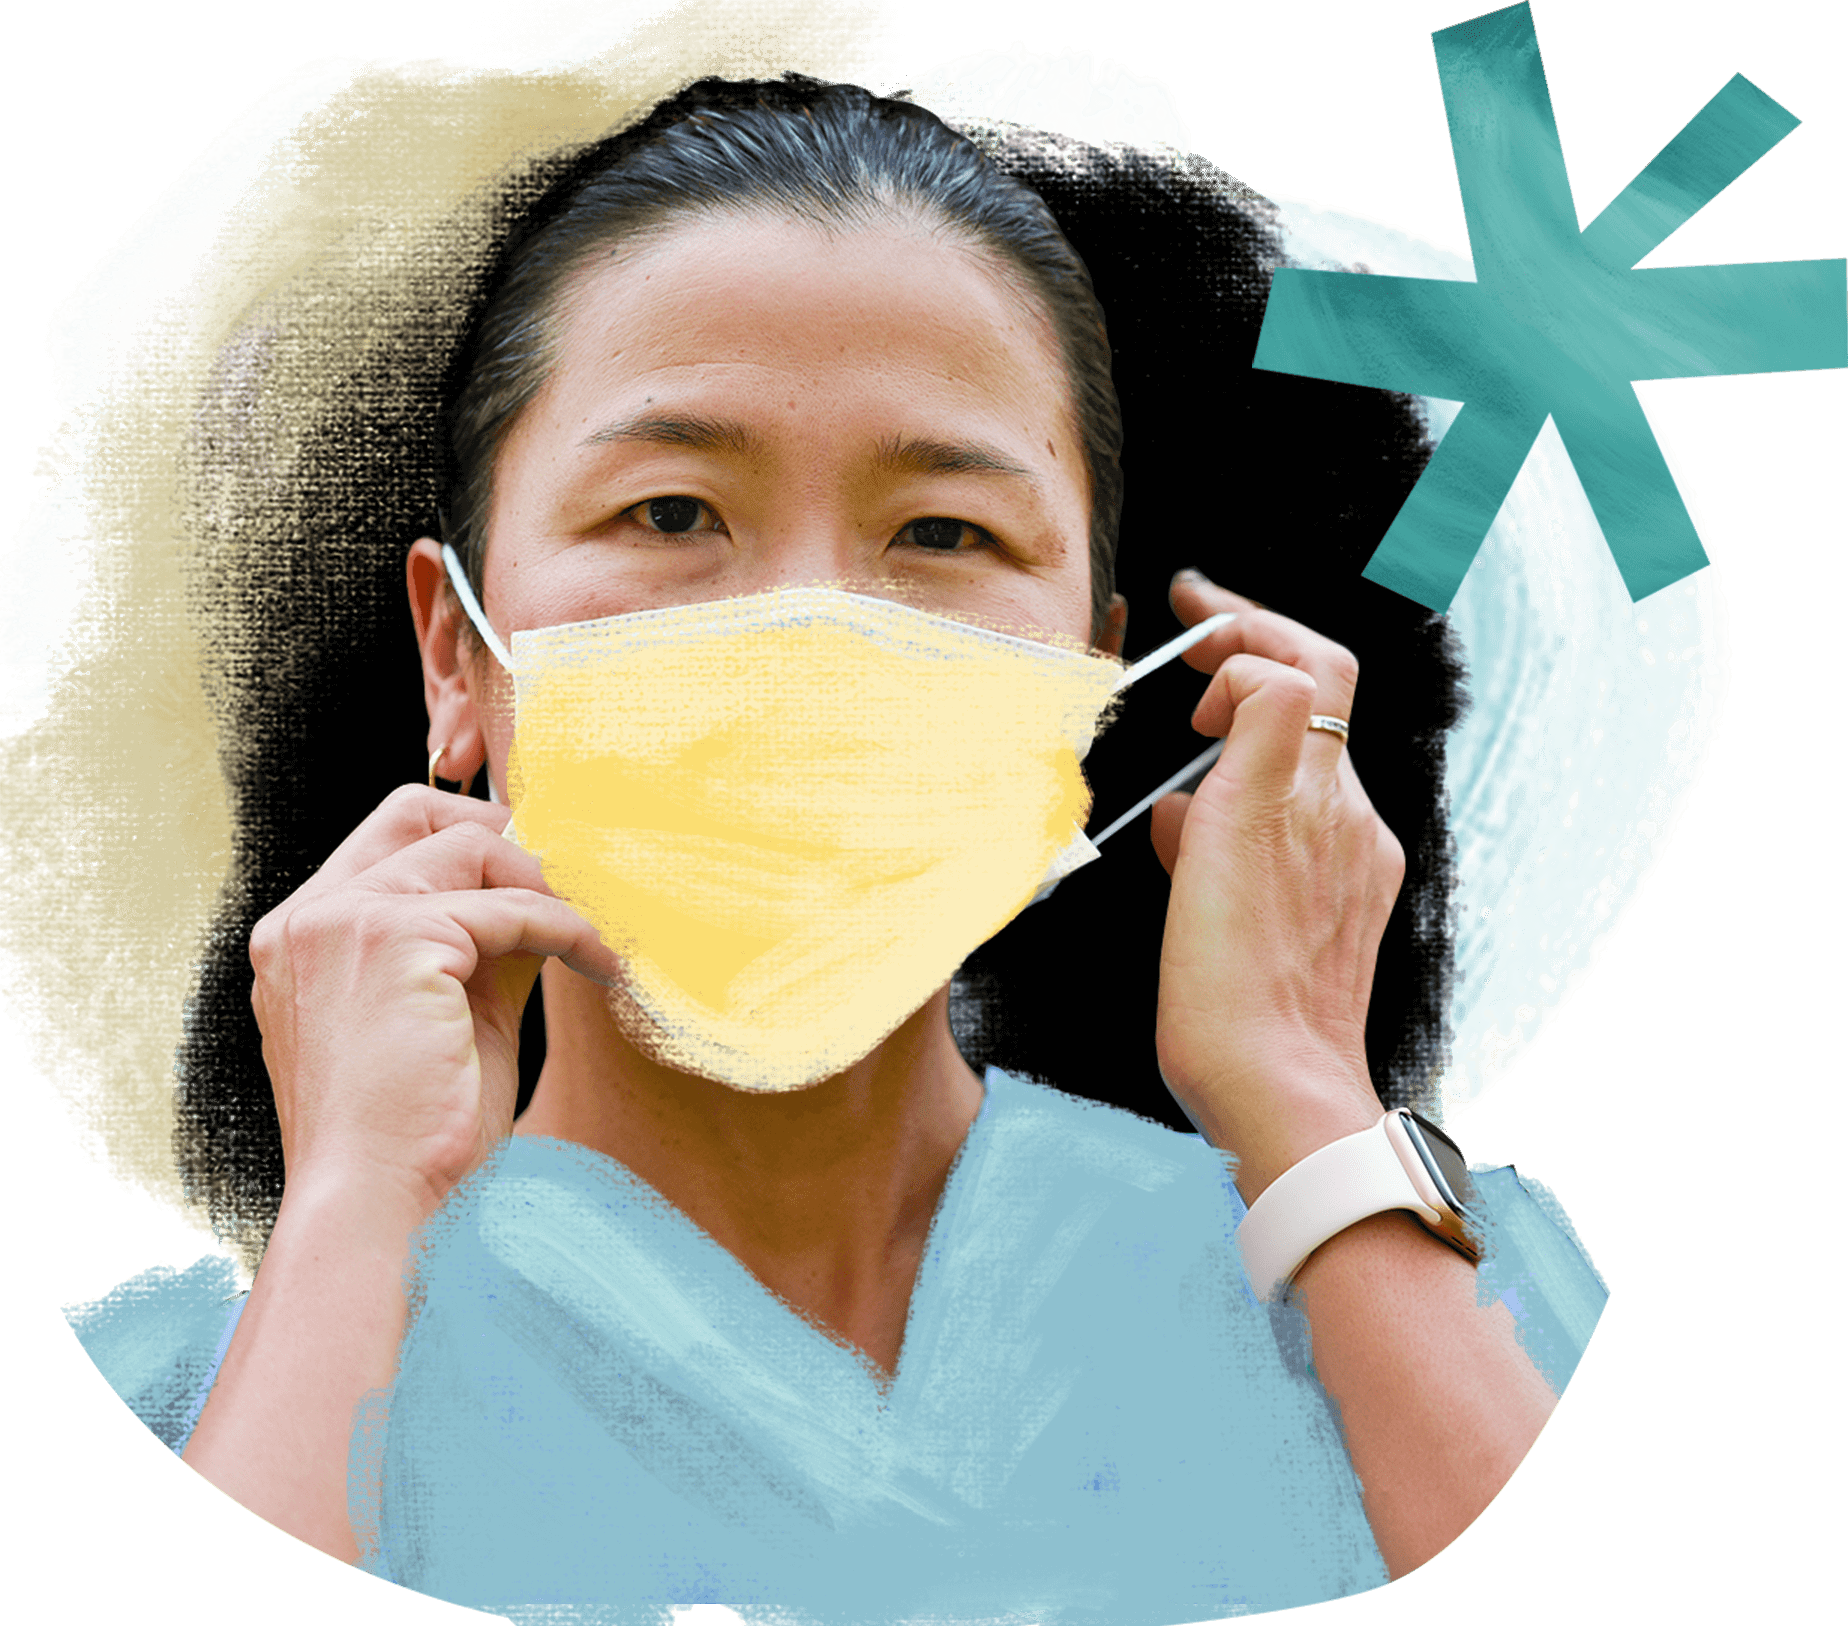 A woman wears medical scrubs and put on a yellow medical mask.